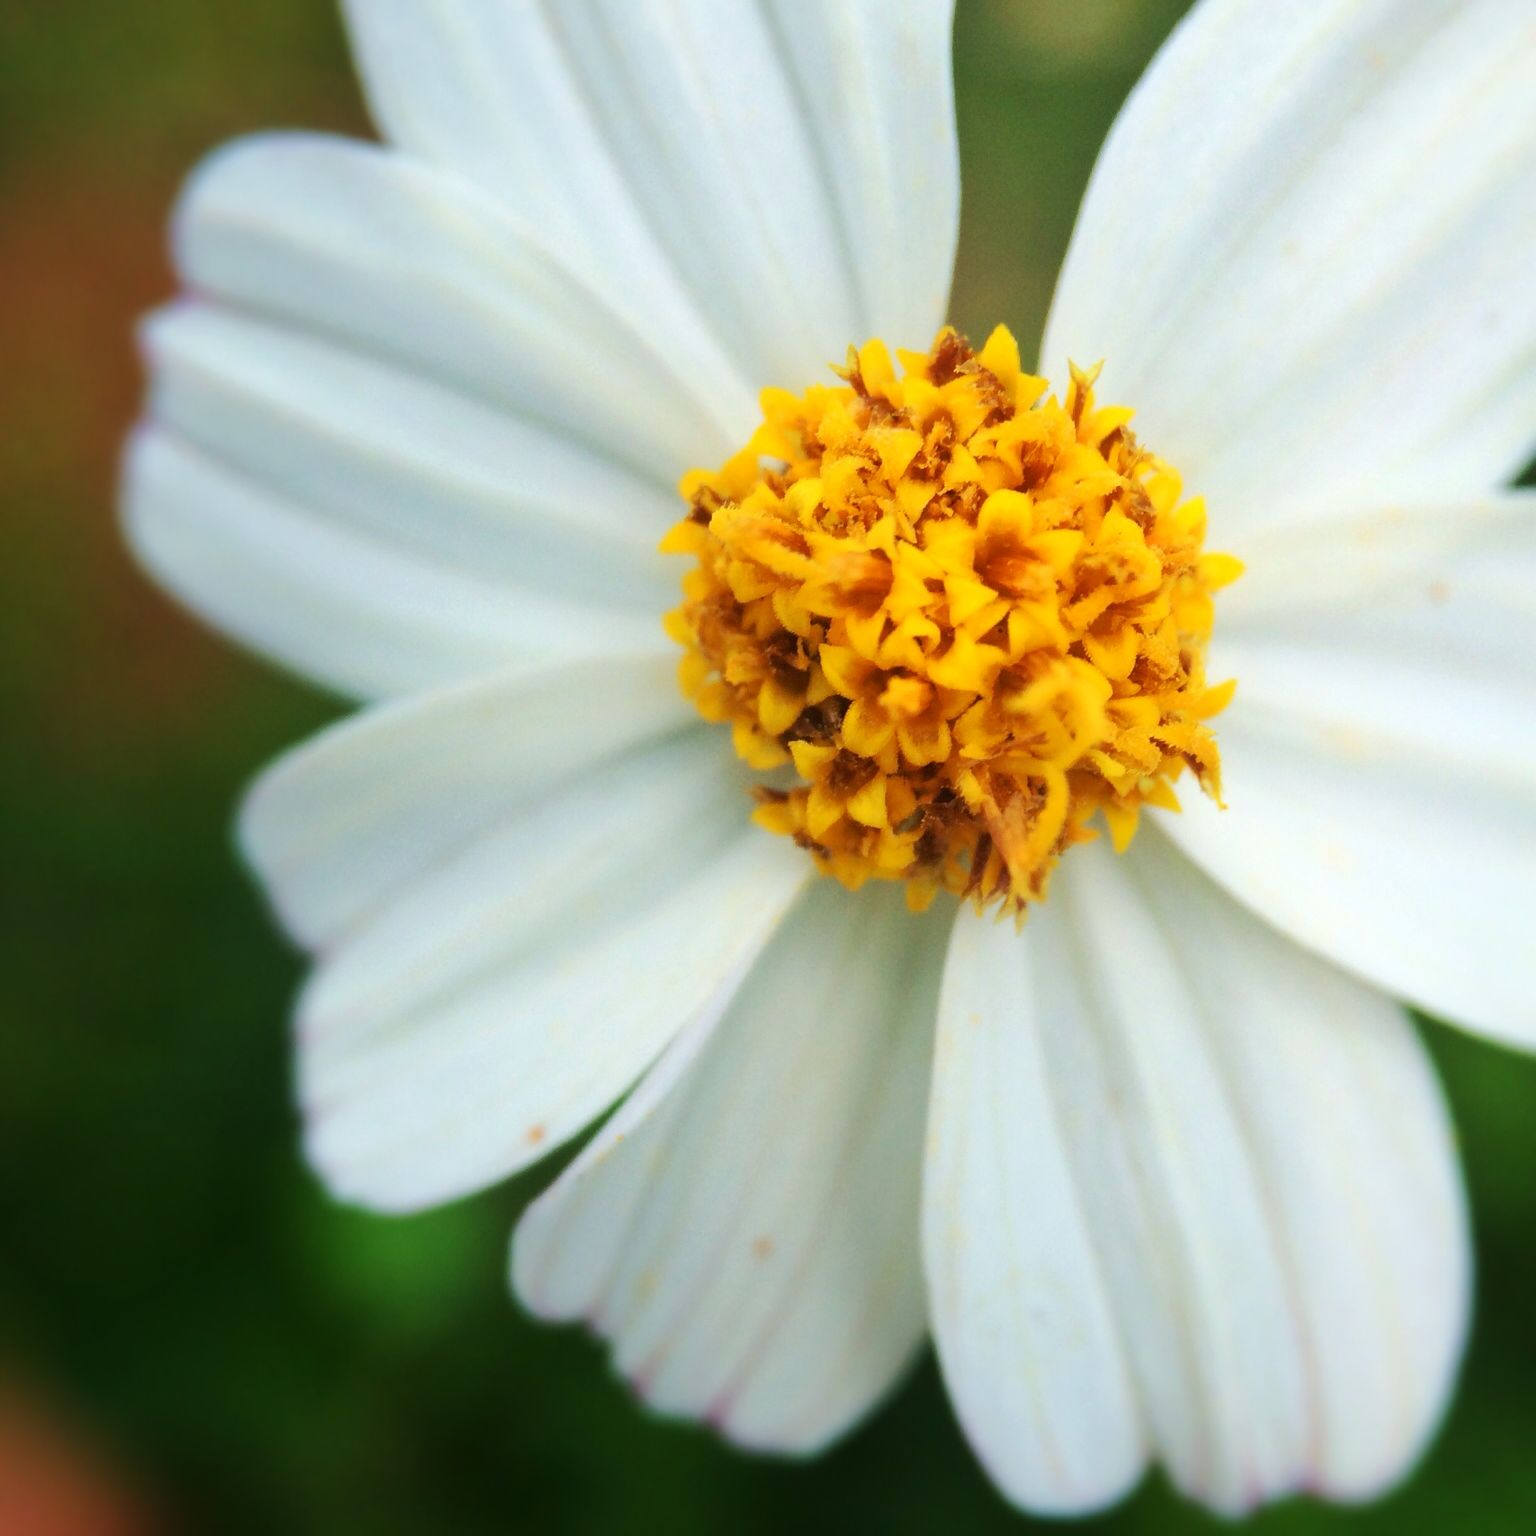 Not a just a weed bidens alba all parts of this plucky little daisy not a just a weed bidens alba all parts of this plucky little daisy izmirmasajfo Gallery